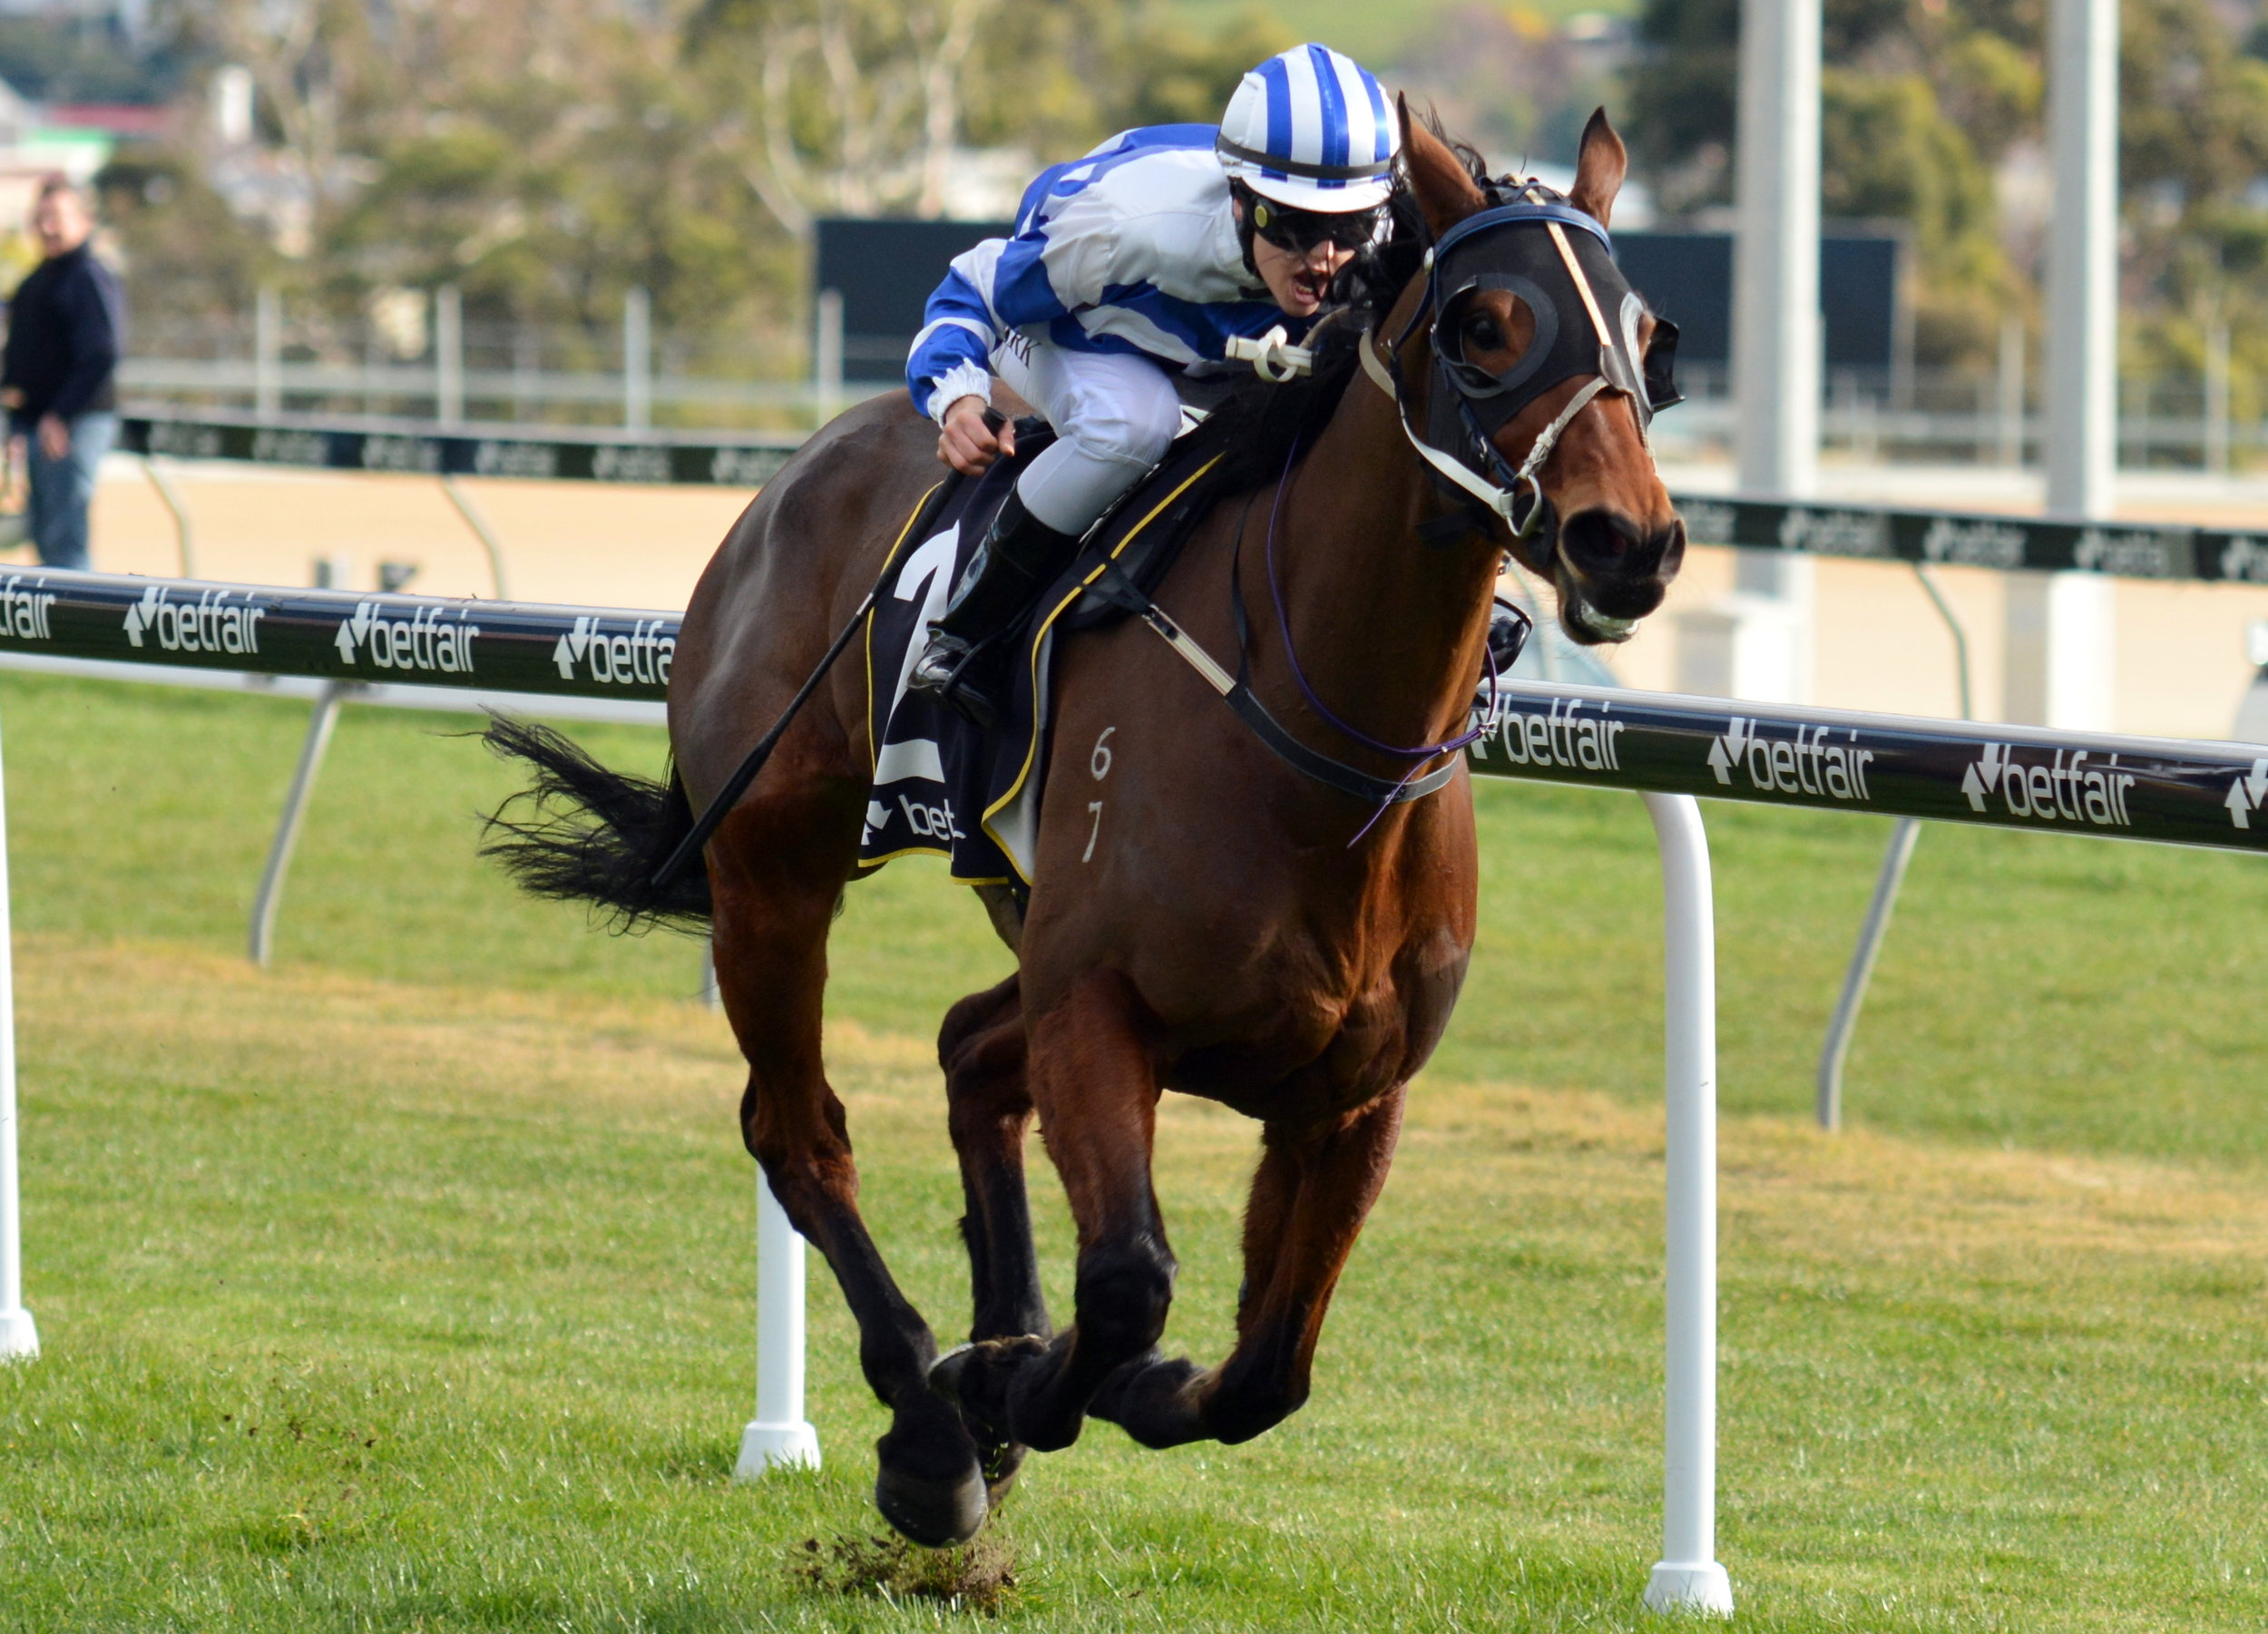 Image courtesy Tasracing - Raquel wins on Spotluck at Elwick (Hobart)